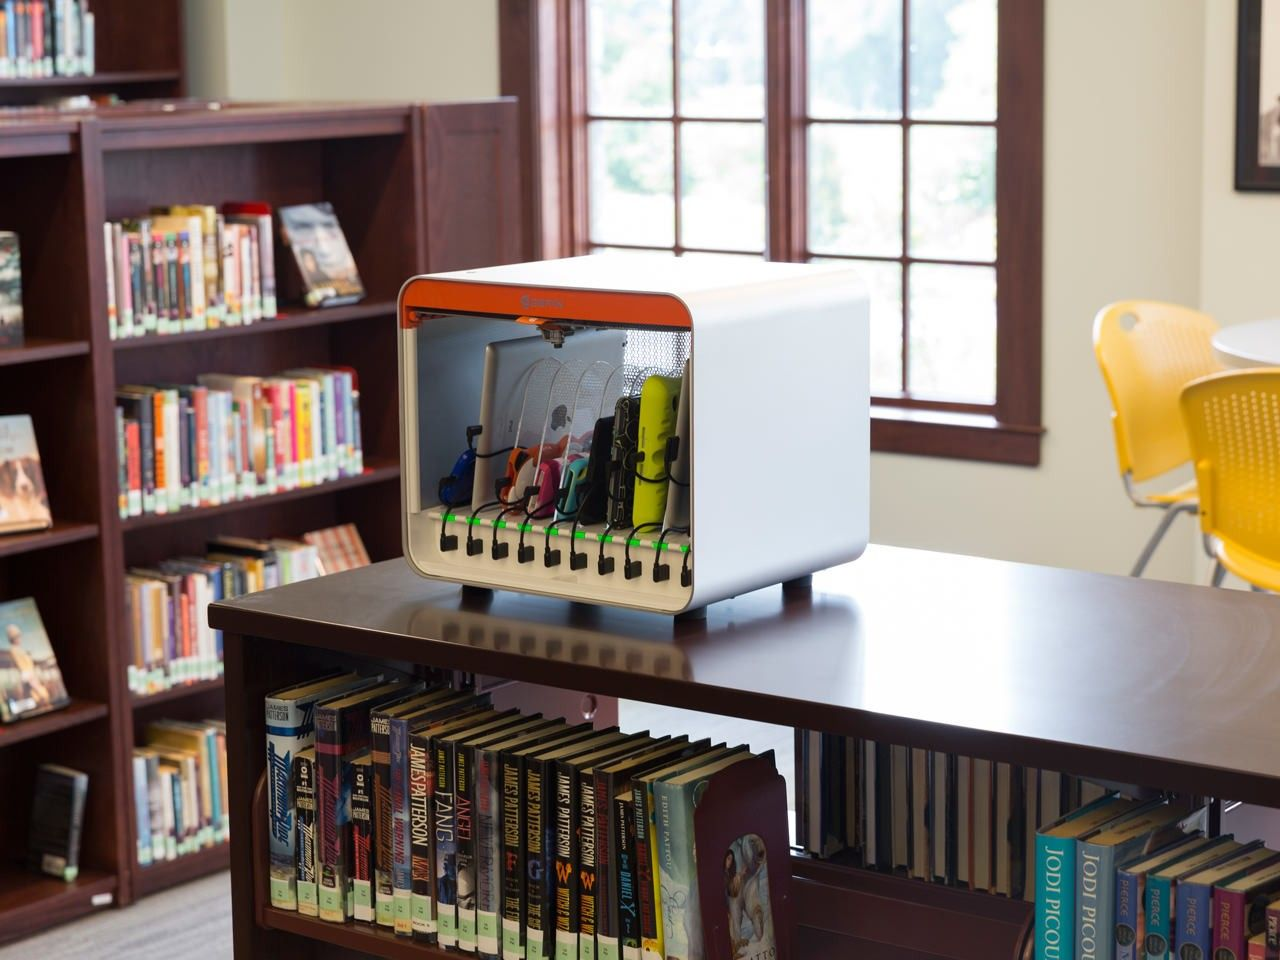 multidock ipad charging station in library edtech